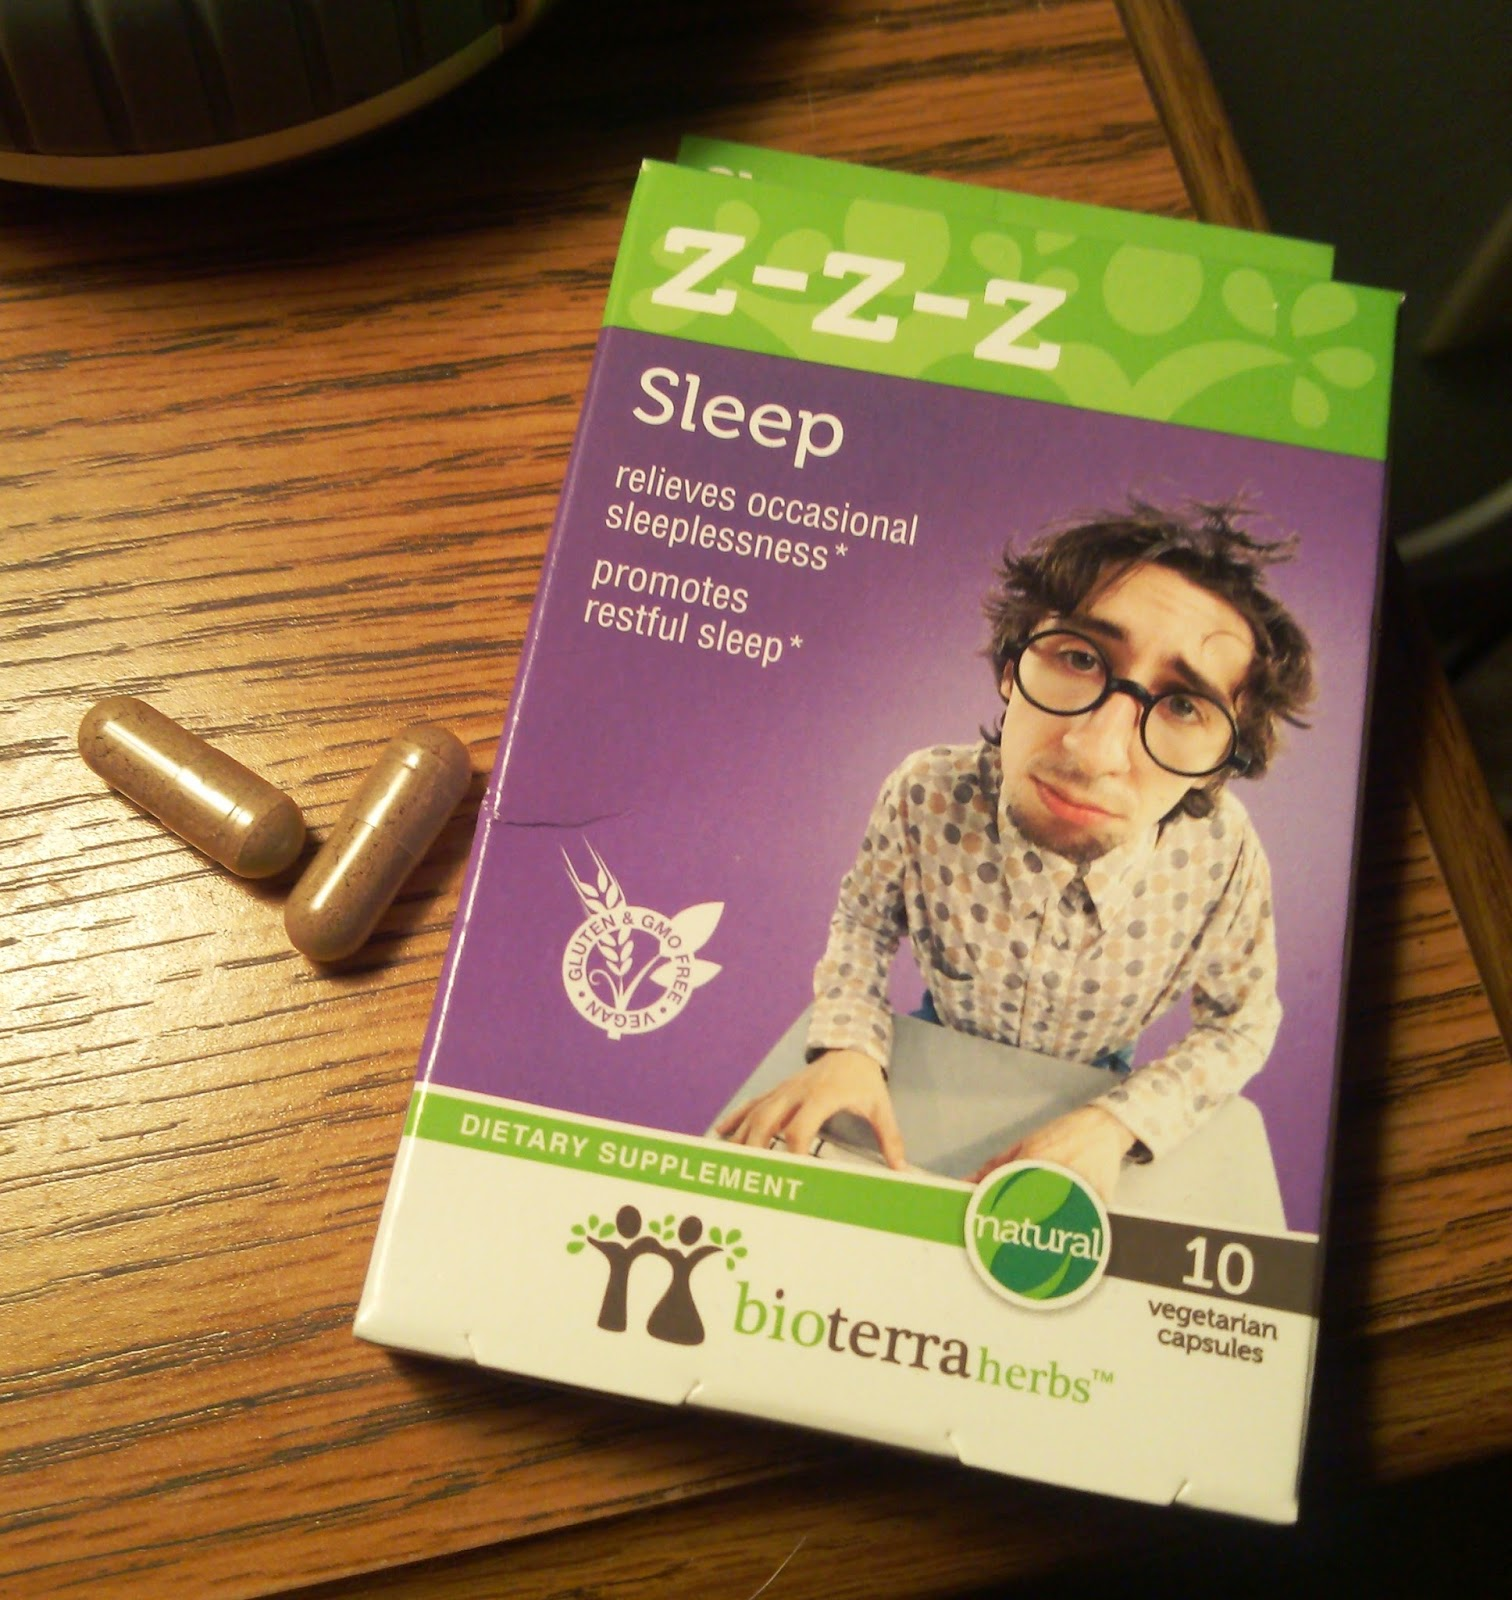 BioTerra Herbs Sleep (z-z-z) Supplement Review